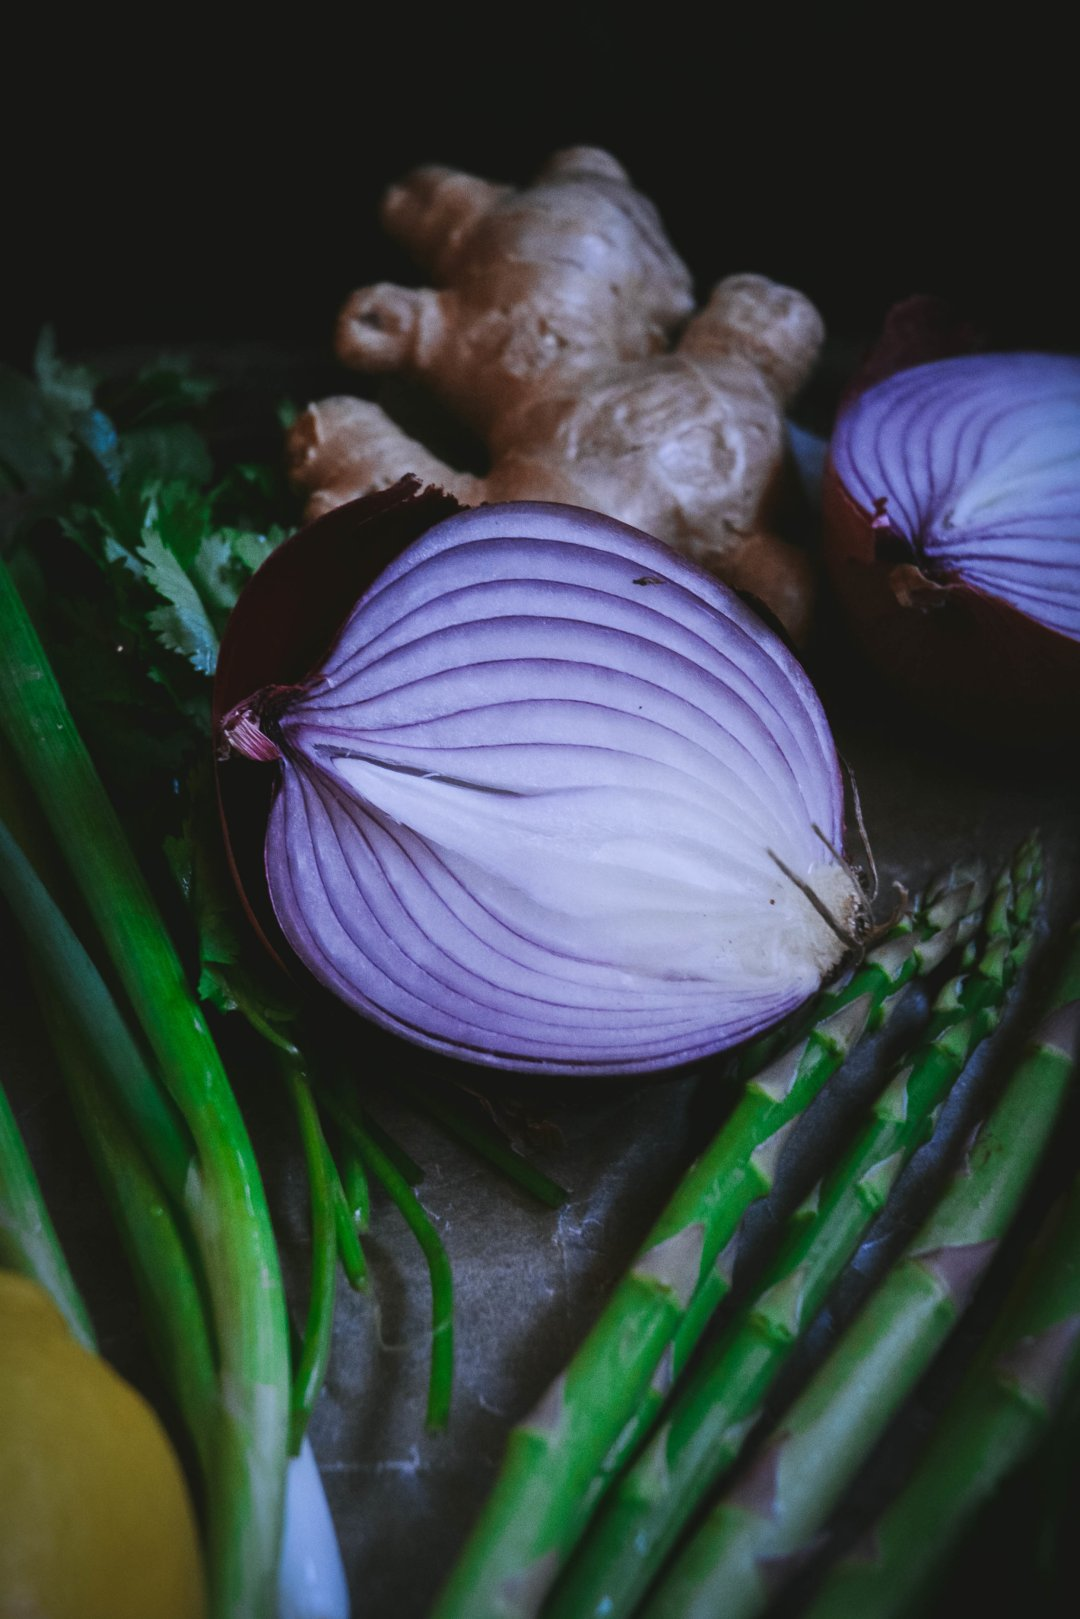 red onion, ginger, asparagus